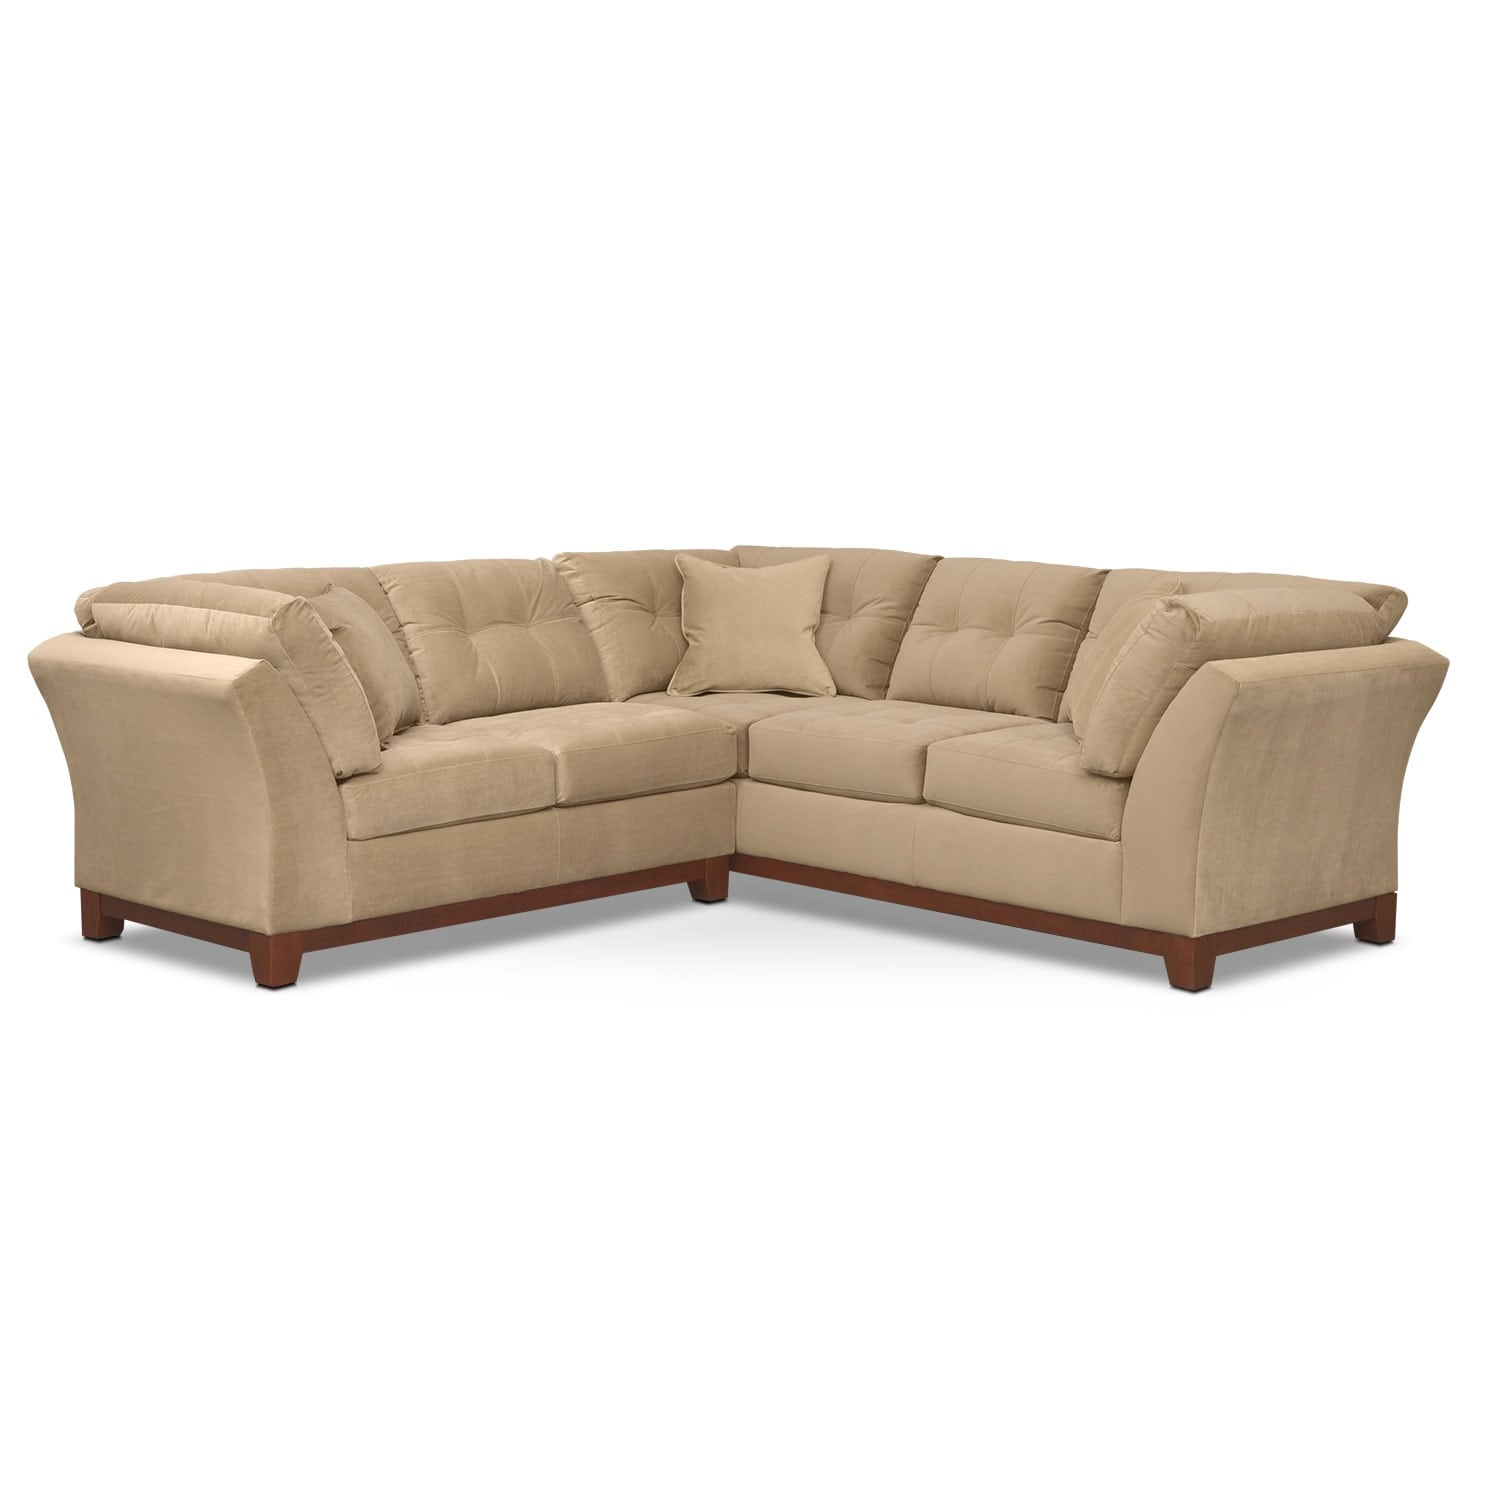 "Living Room Furniture - Solace 2-Piece Right-Facing 105"" Sofa Sectional - Cocoa"